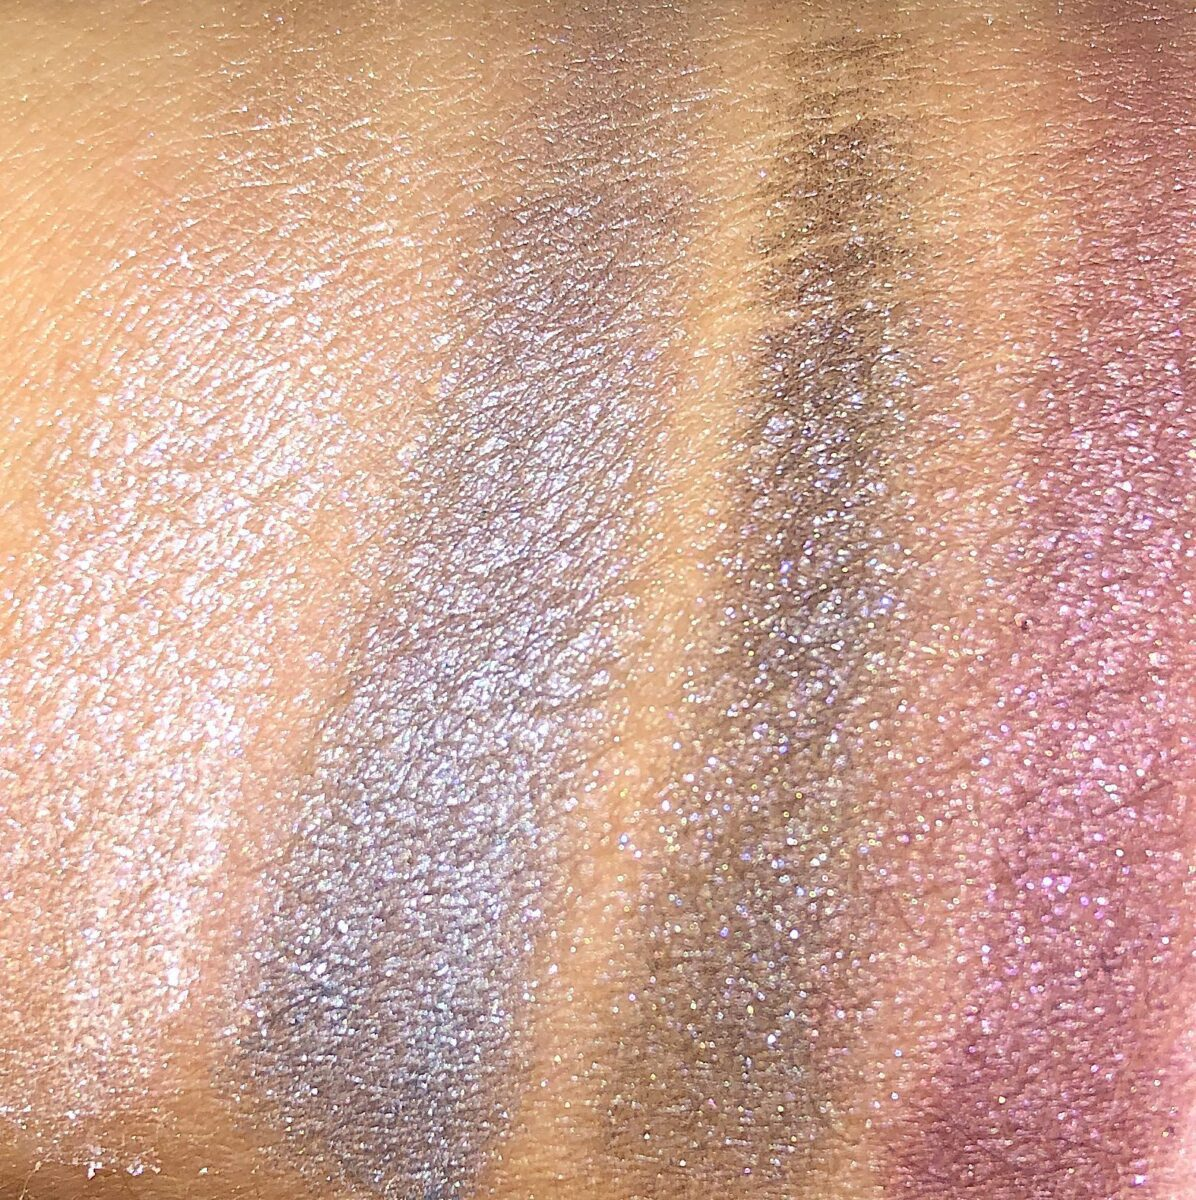 SWATCHES OF THE MIDDLE SHADES IN THE GIVENCHY RED EDITION EYESHADOW PALETTE